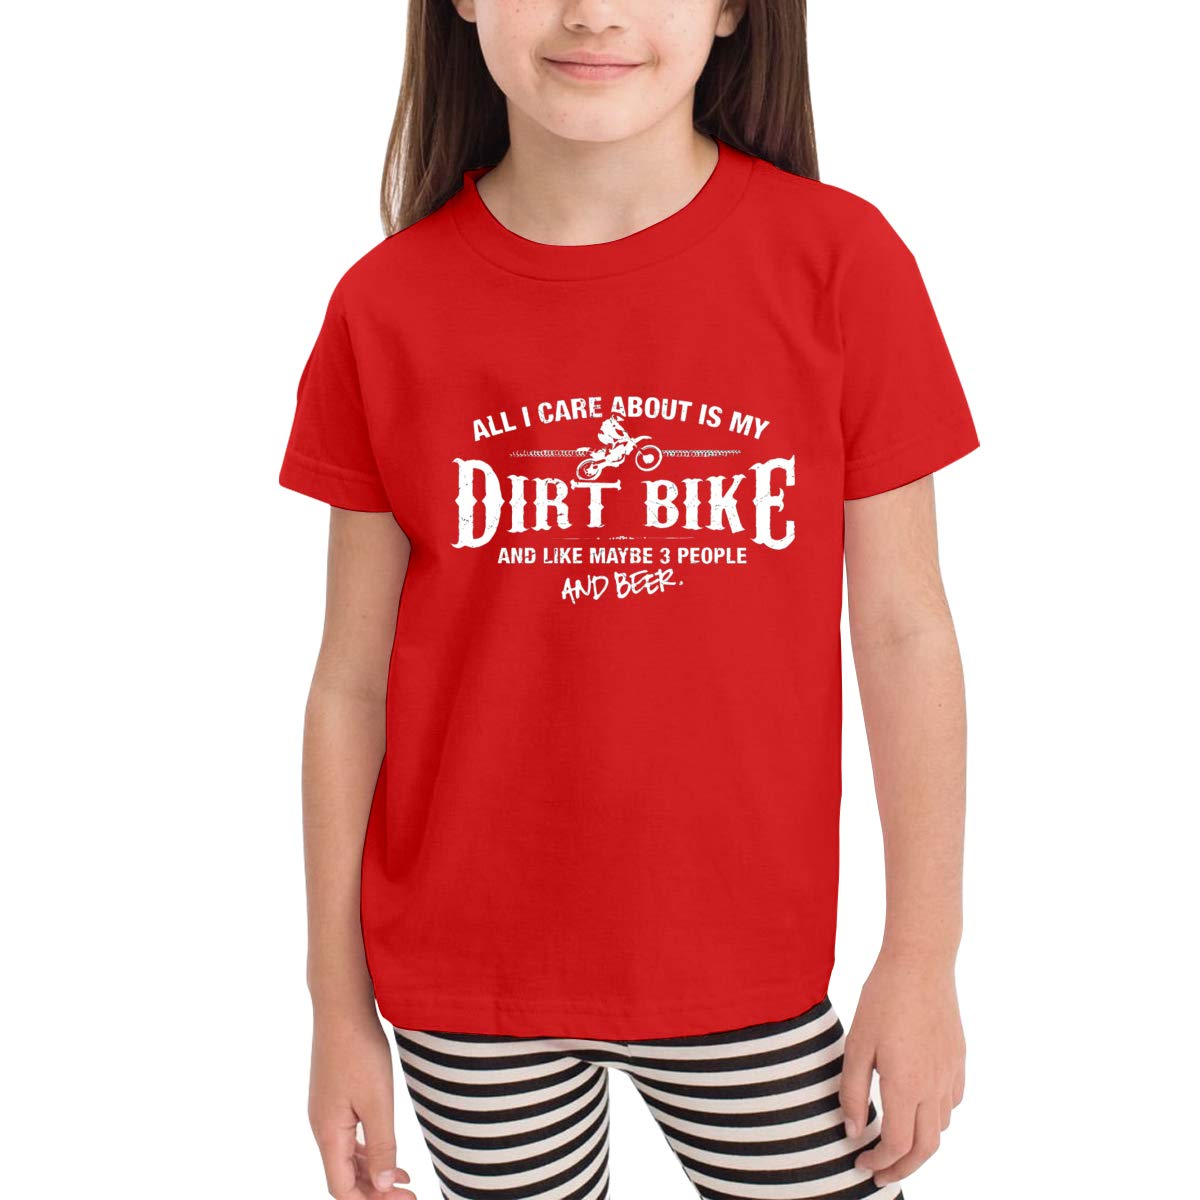 Kids T-Shirt Tops Black All I Care About is My Dirt Bike Unisex Youths Short Sleeve T-Shirt